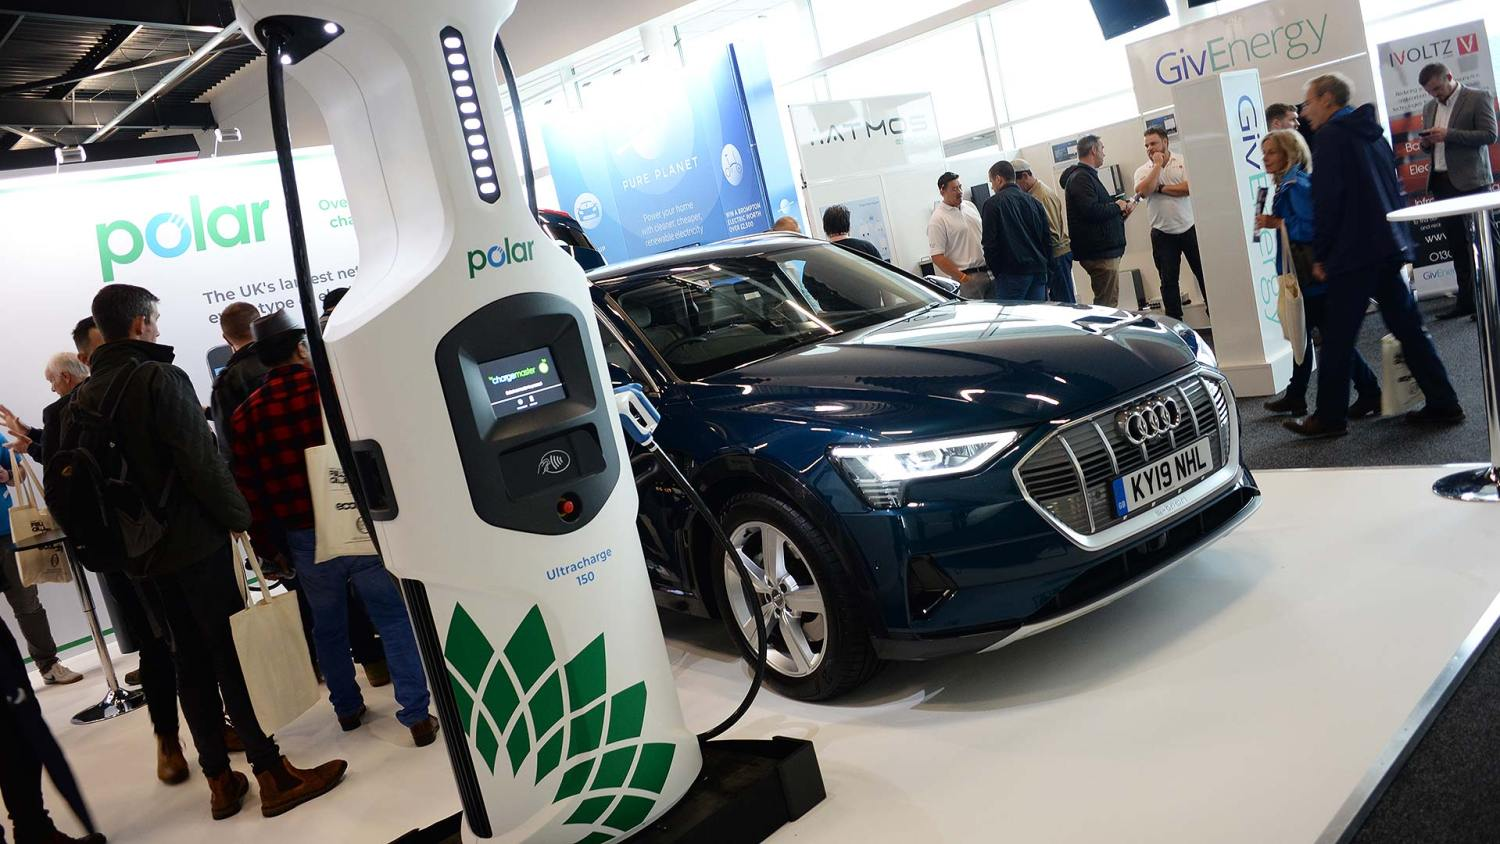 Fully Charged Live 150kw rapid charger